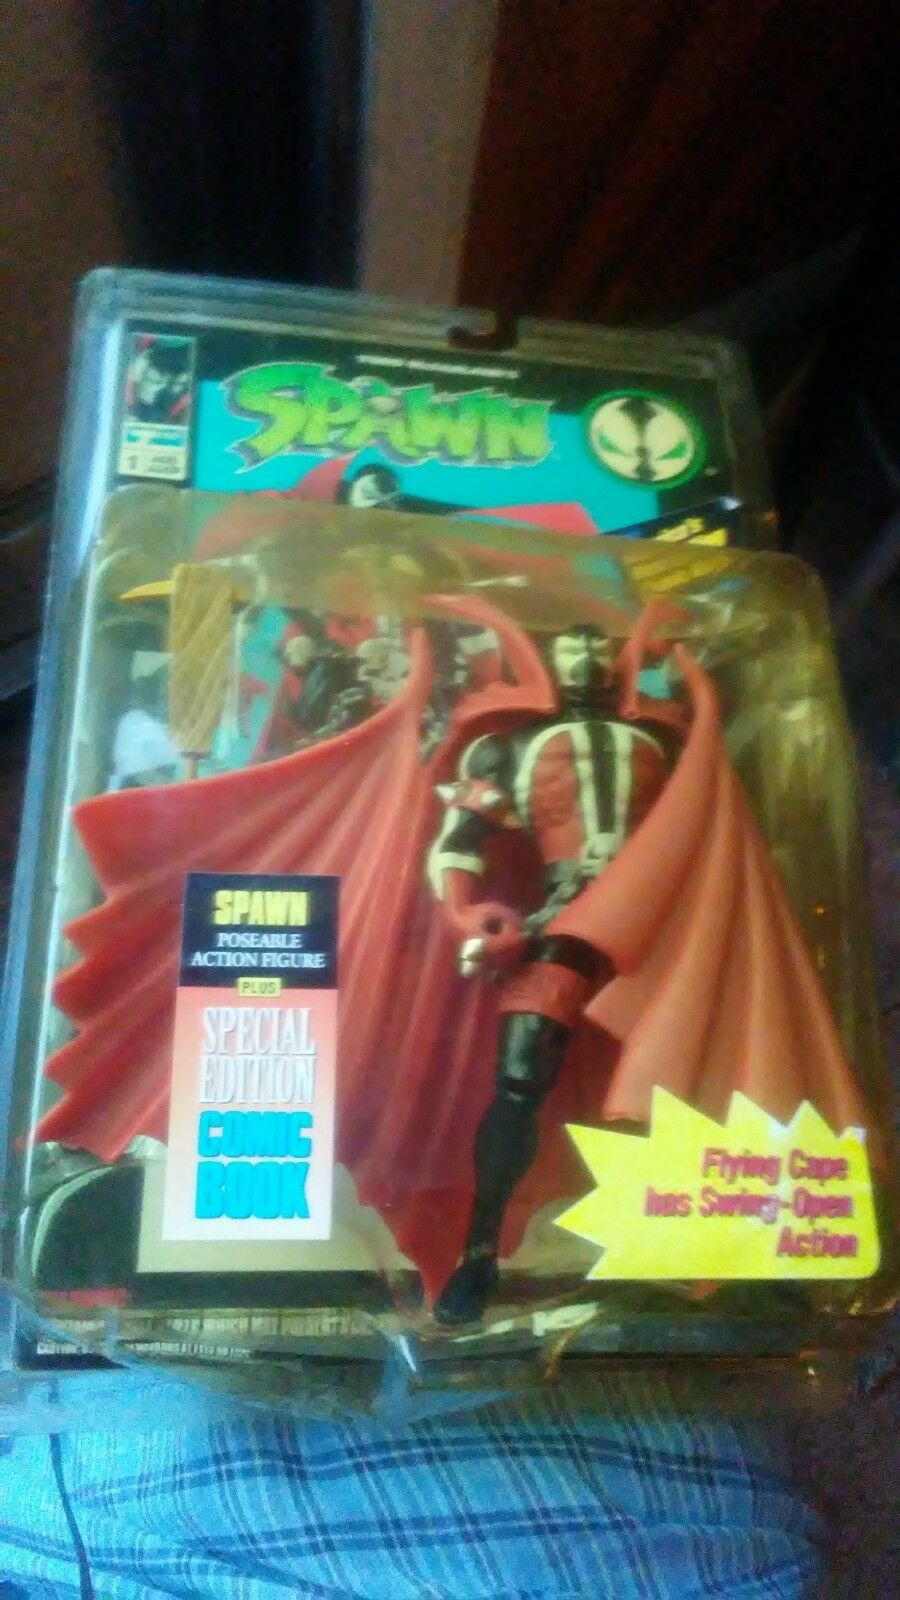 Original 1994 SPAWN ACTION FIGURE by TODD TOYS with COMIC BOOK COLLECTORS ITEM